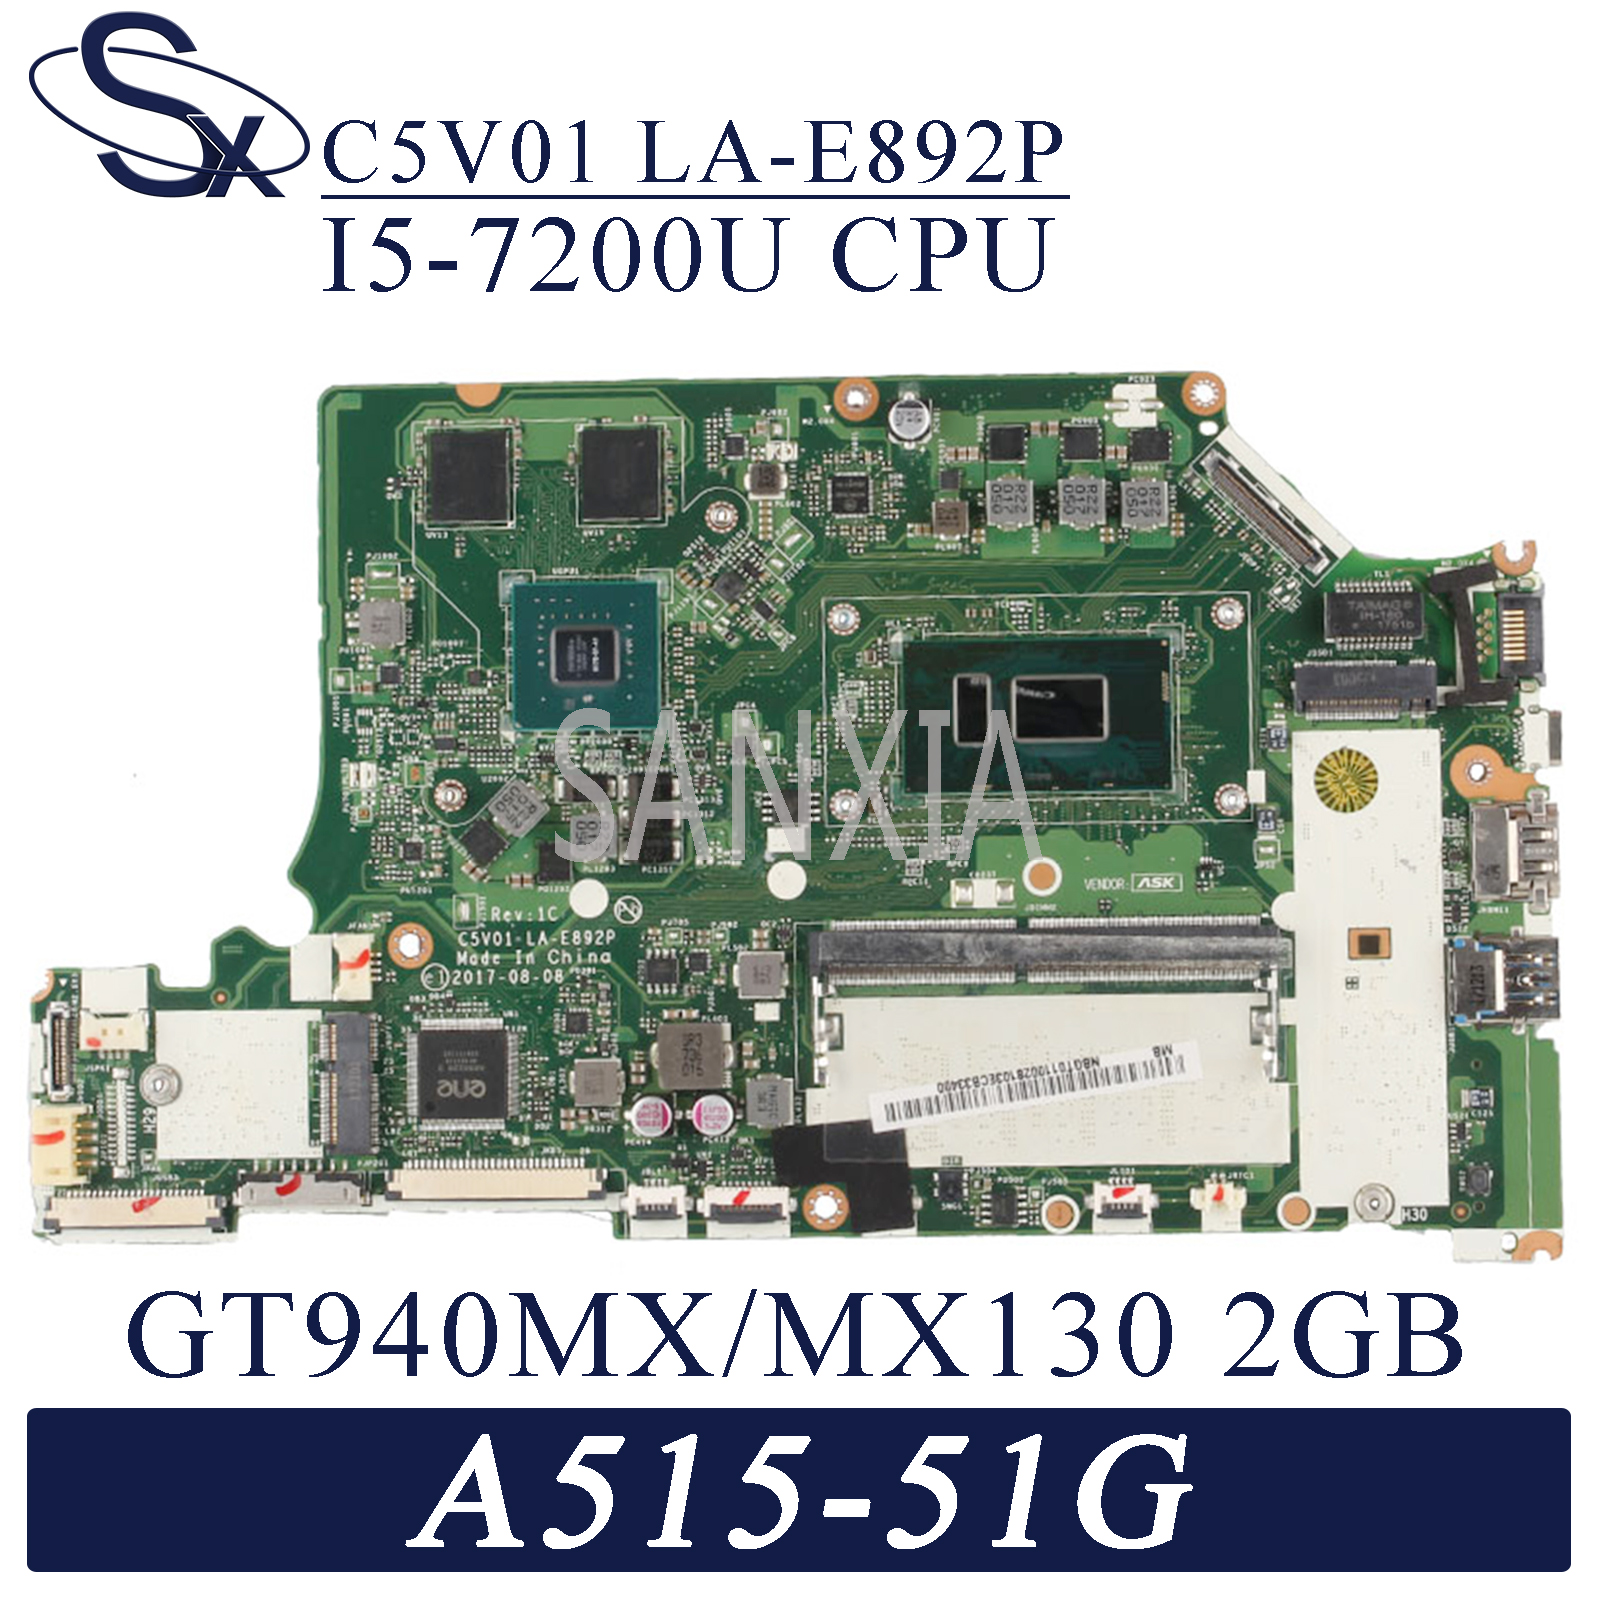 KEFU LA-E892P <font><b>Laptop</b></font> motherboard for Acer A515-51G A615-51G original mainboard Onboard 4GB-RAM I5-7200U GT940MX/<font><b>MX150</b></font>-2GB image